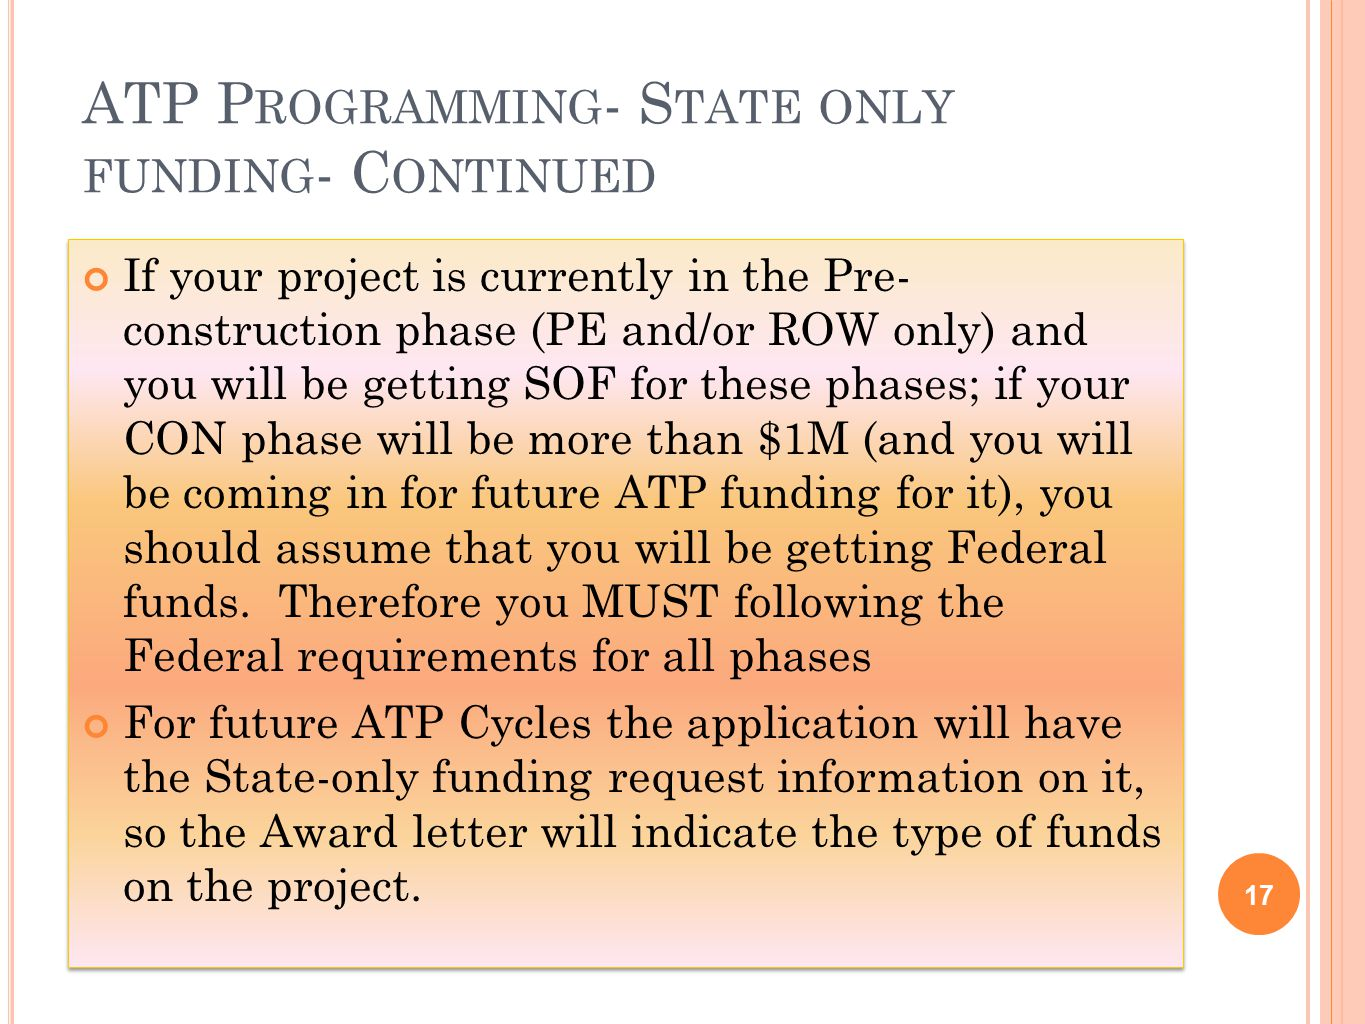 ATP P ROGRAMMING - S TATE ONLY FUNDING - C ONTINUED 17 If your project is currently in the Pre- construction phase (PE and/or ROW only) and you will be getting SOF for these phases; if your CON phase will be more than $1M (and you will be coming in for future ATP funding for it), you should assume that you will be getting Federal funds.